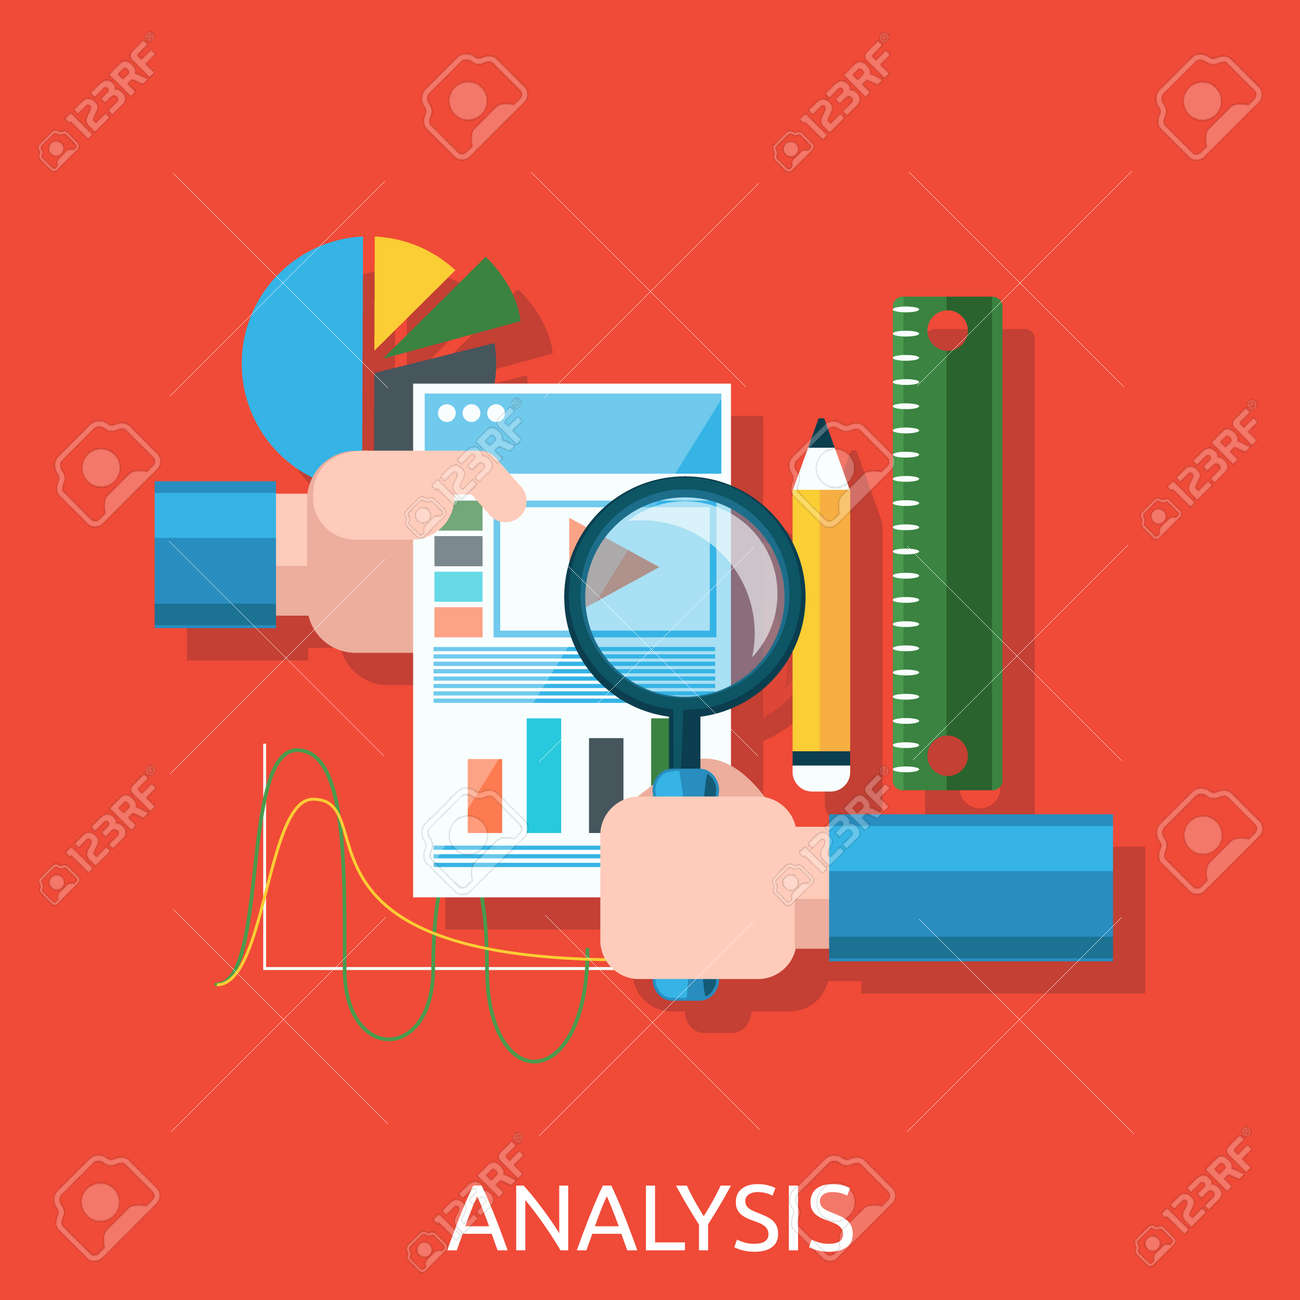 Analysis of actions infographic. Analytics and analysis icon, analyze and business analysis, research data analysis, strategy business, plan web, idea marketing seo. Hands with graph, charts - 53534683